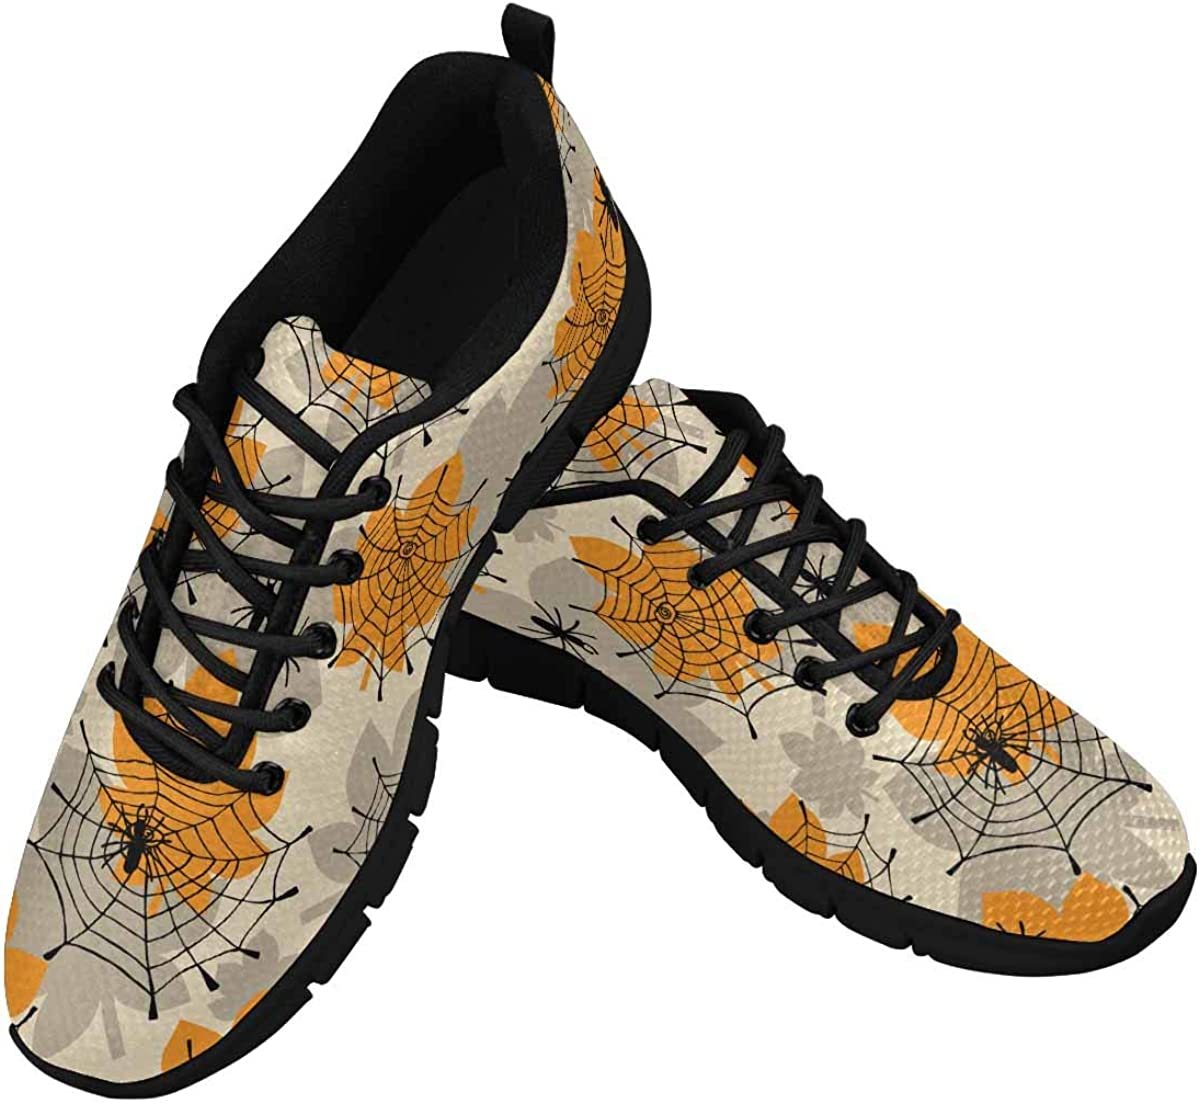 INTERESTPRINT Spider Webs Leaves Women's Lightweight Sneakers Mesh Breathable Yoga Shoes